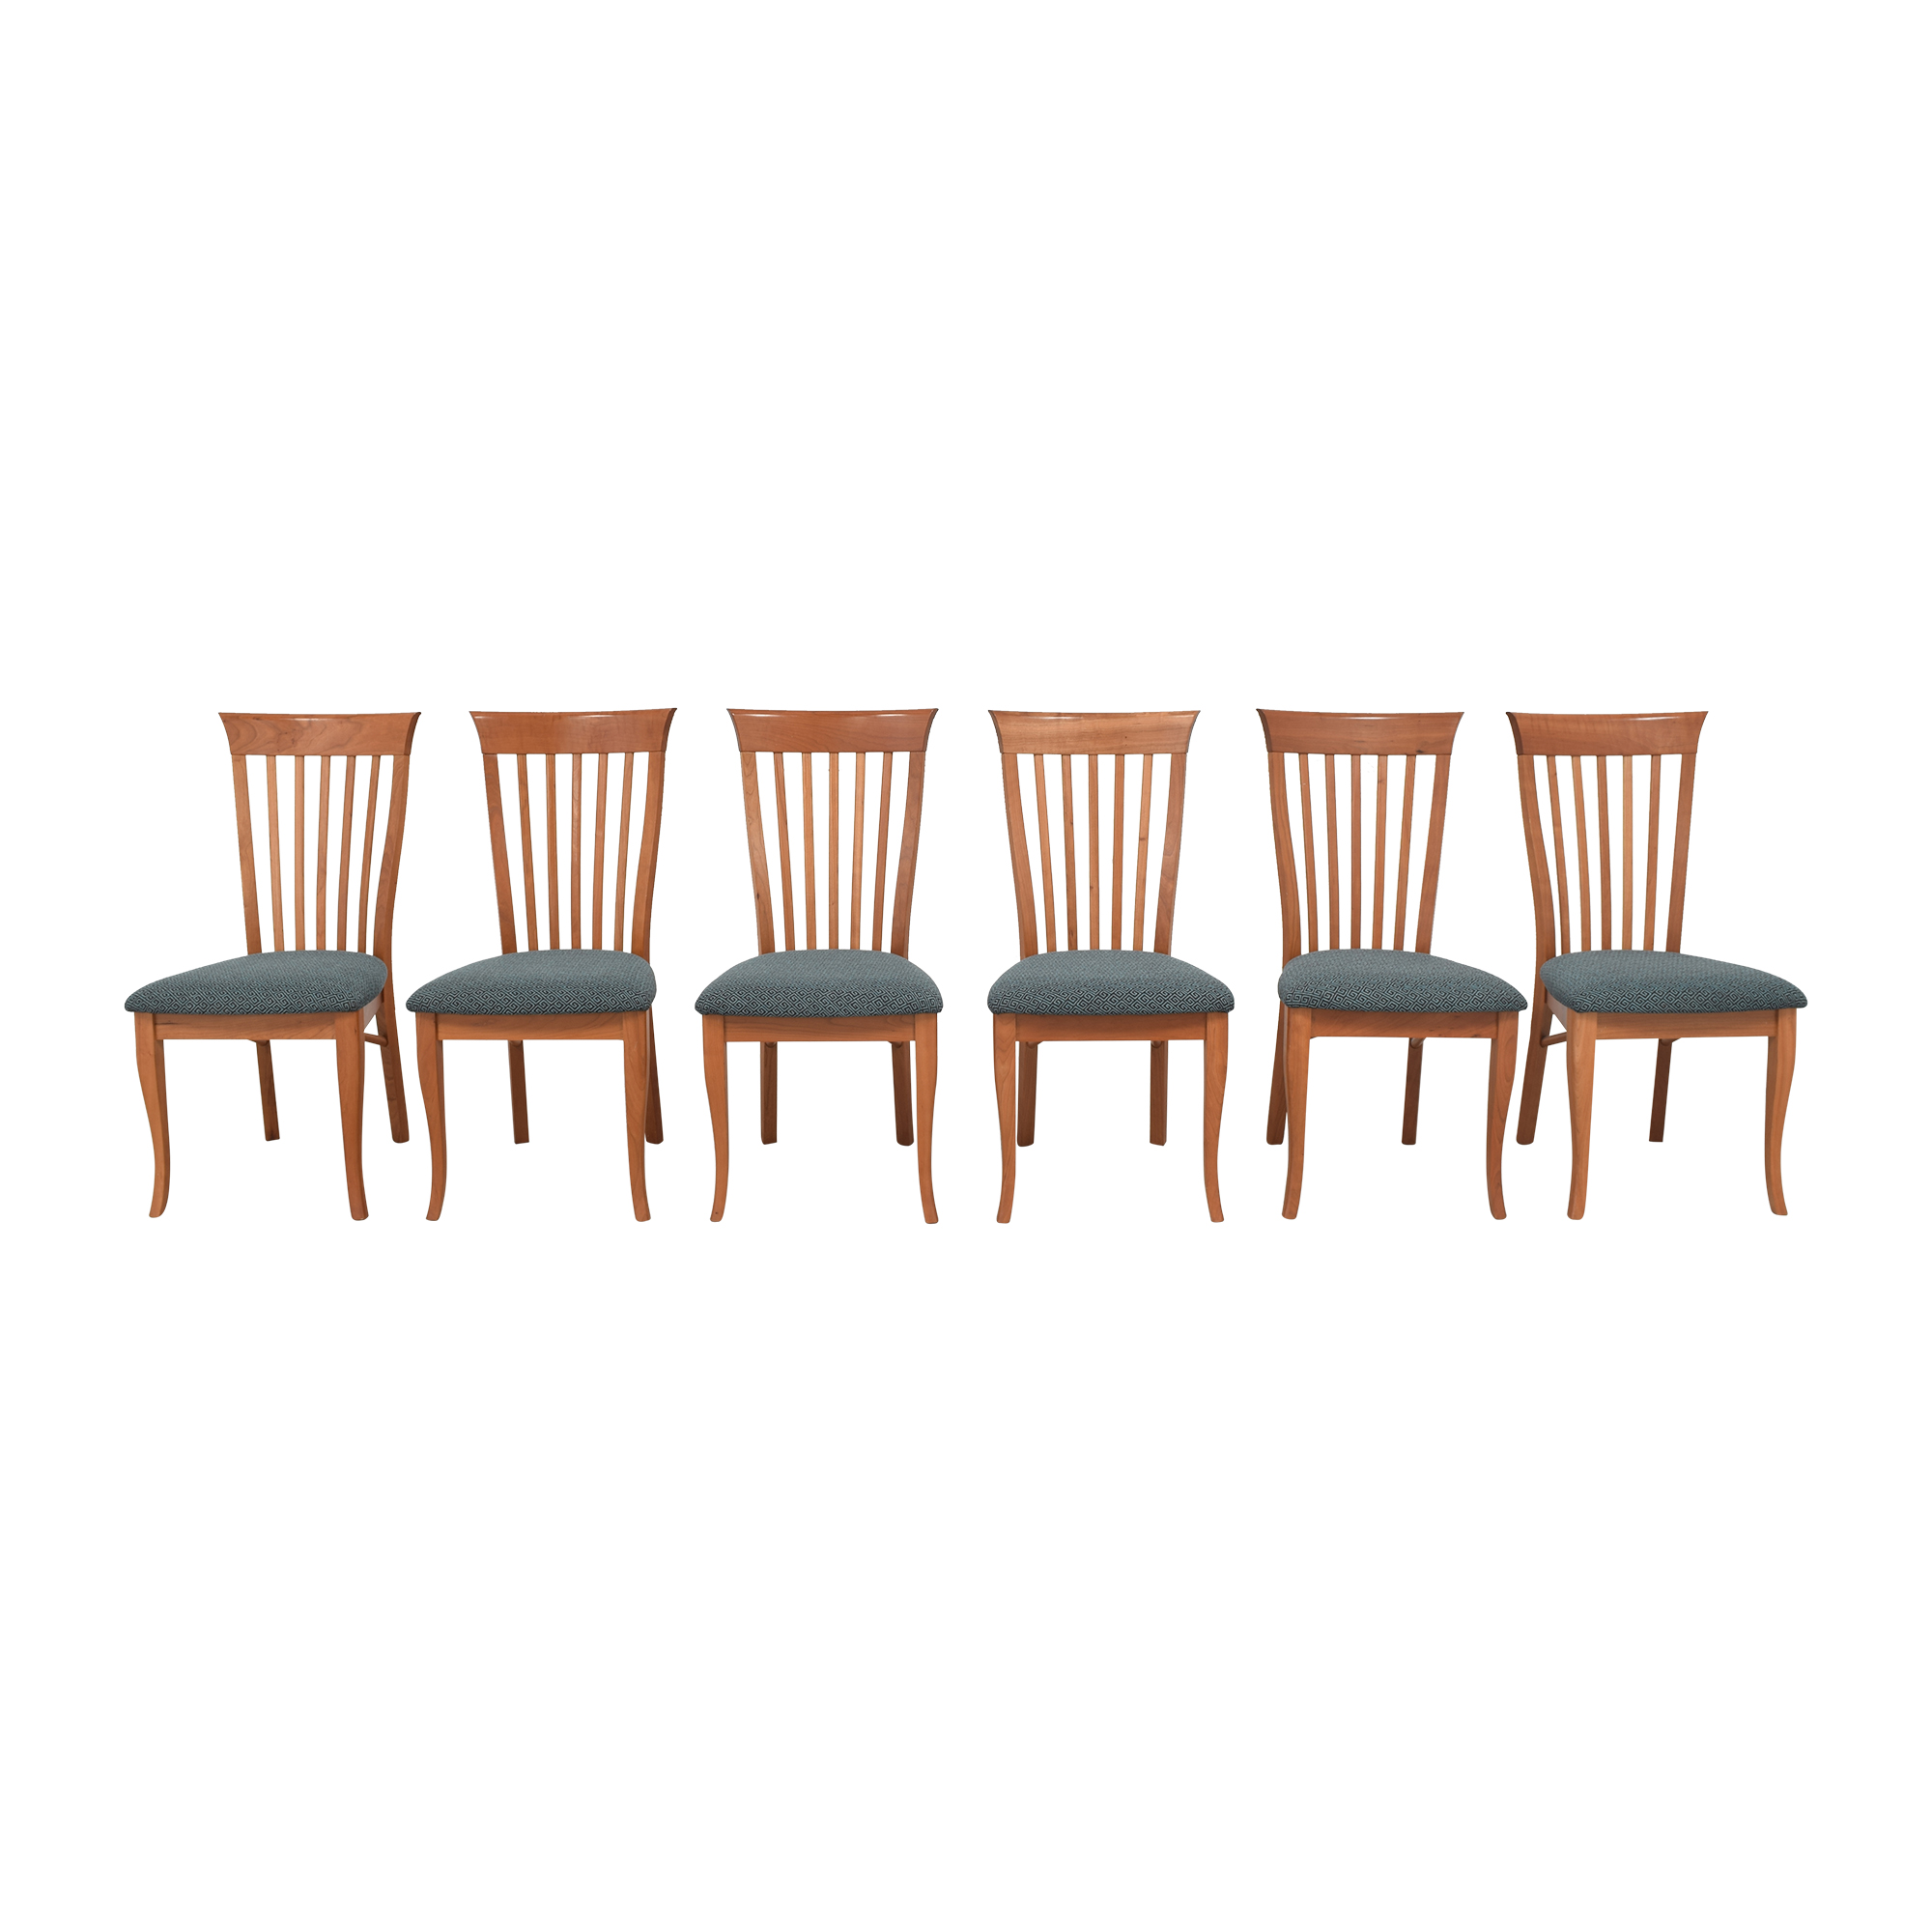 Lyndon Furniture Classic Shaker Dining Side Chairs / Dining Chairs